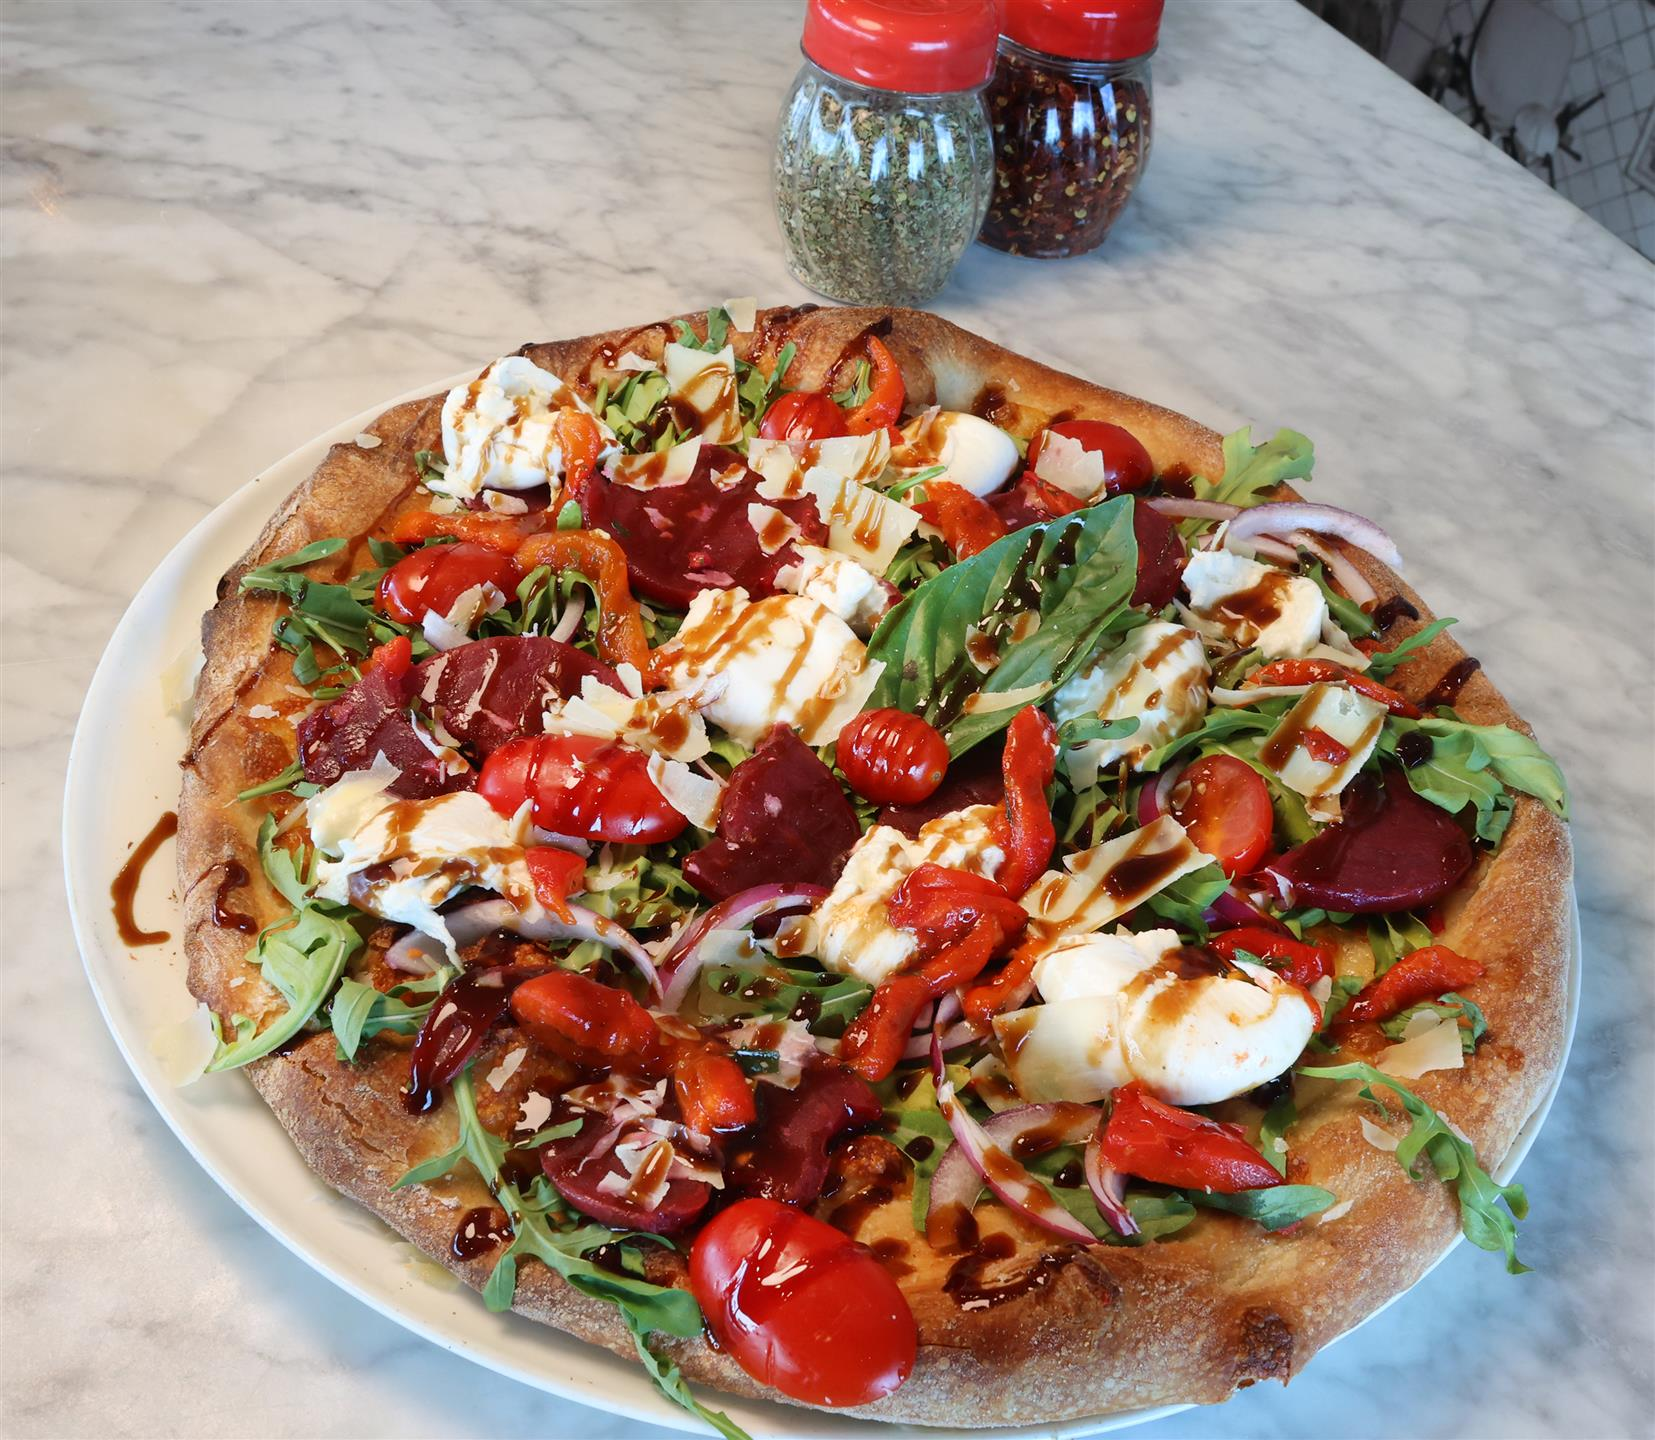 pizza with arugula, tomatoes, mozzarella, beets, and a balsamic drizzle